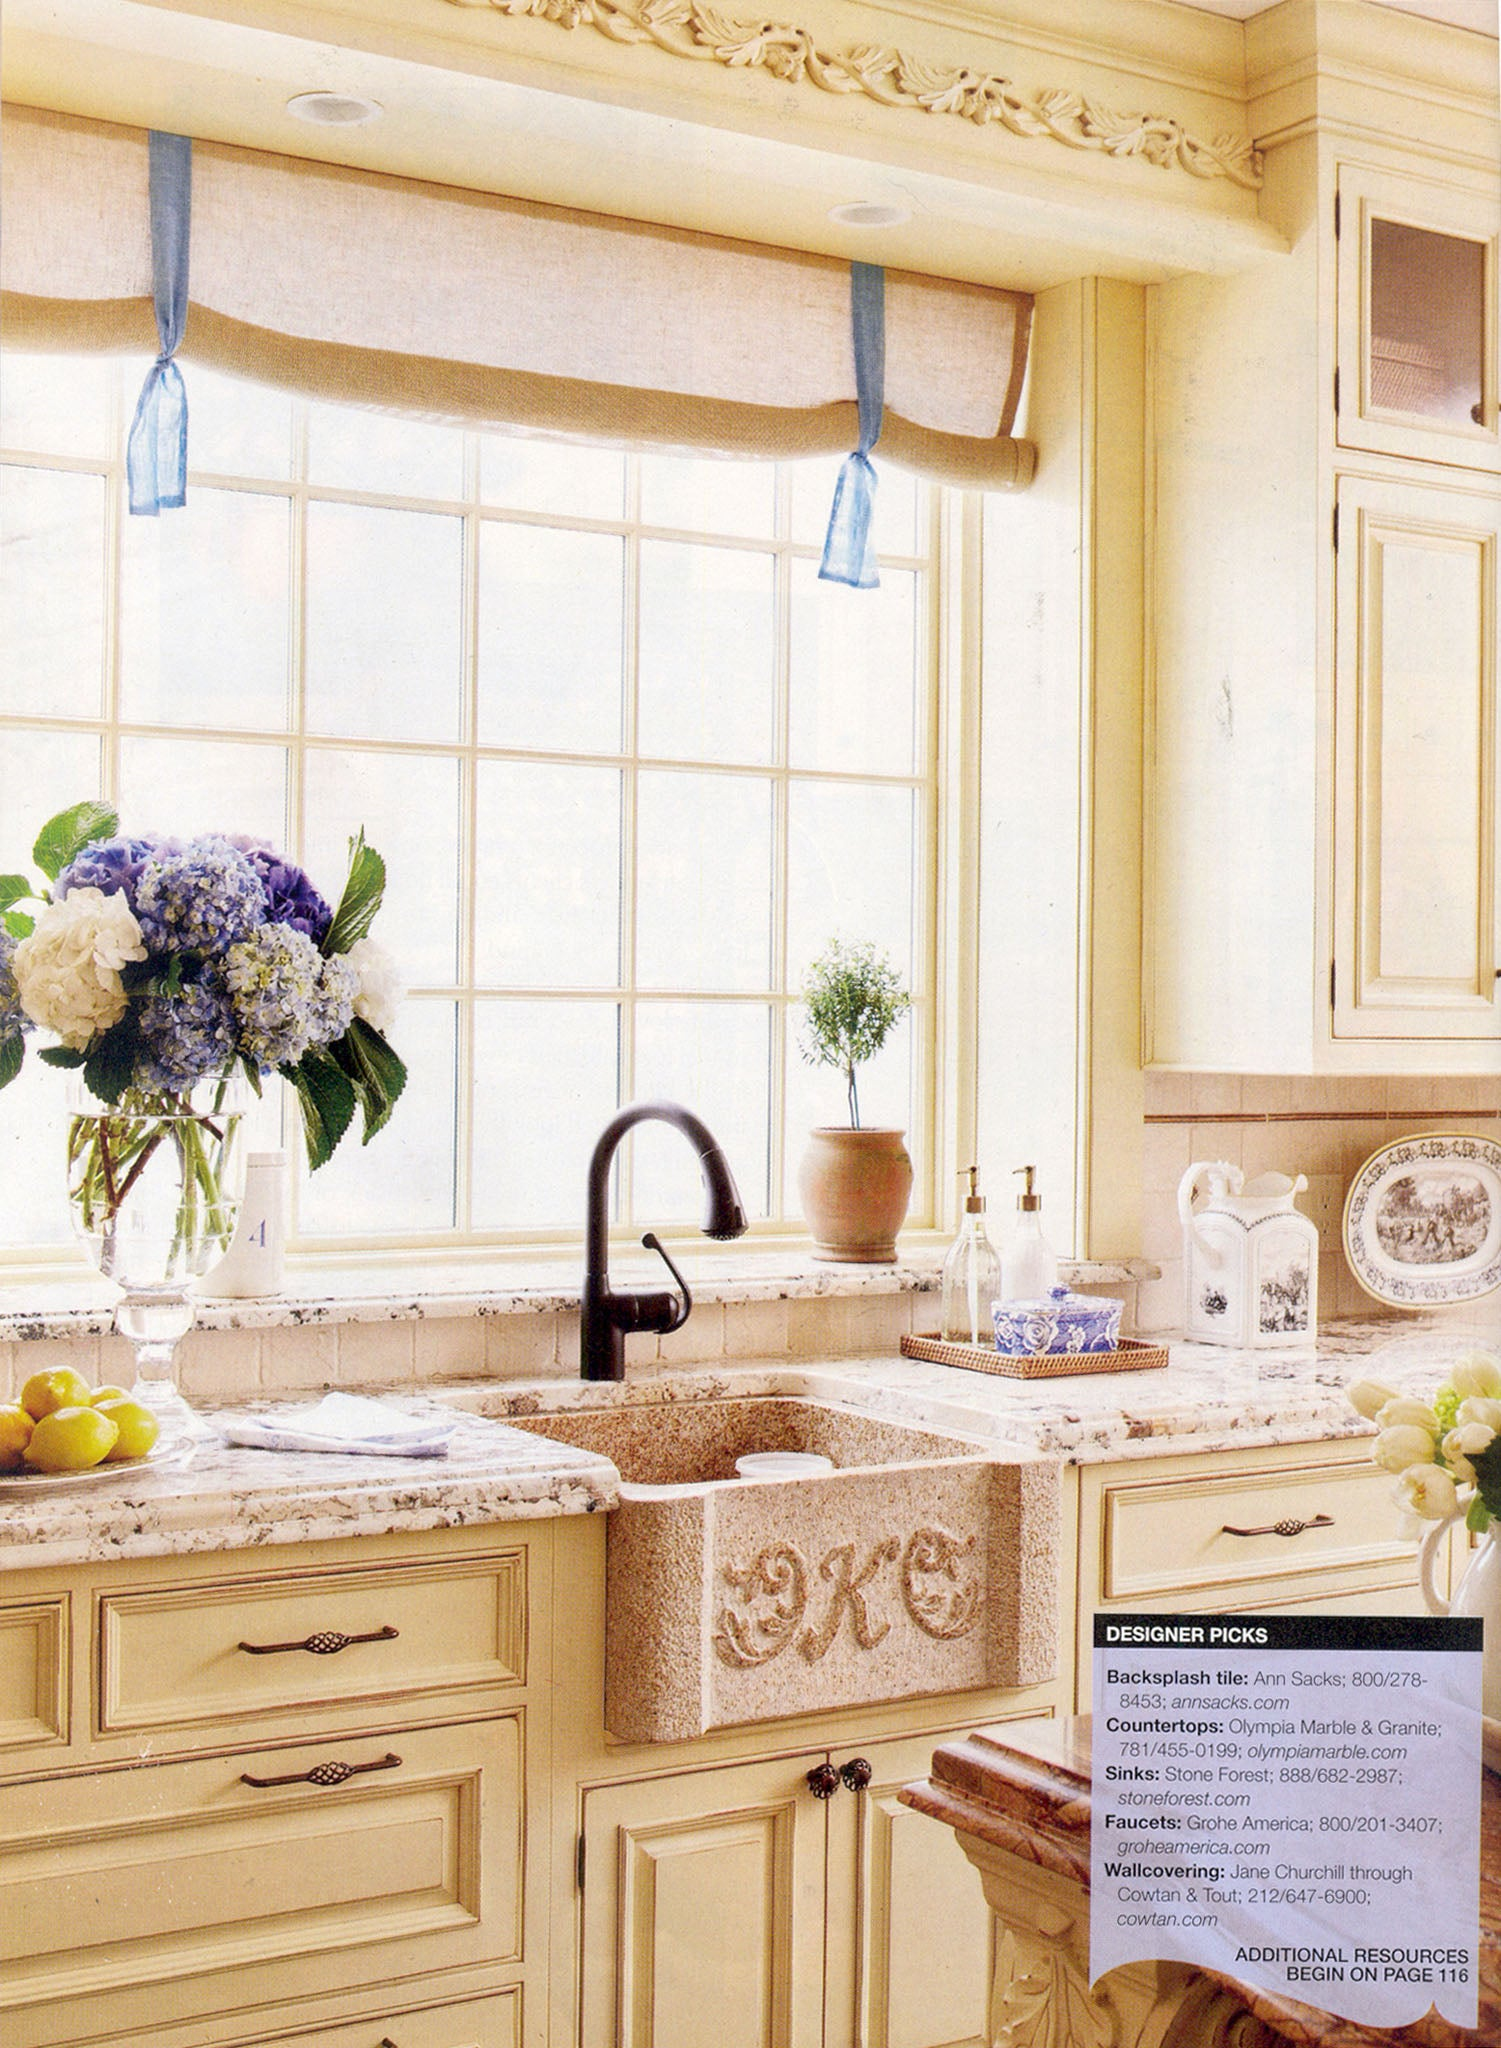 Better Homes And Garden Kitchens Better Homes And Gardens Beautiful Kitchens Summer 2010 Stone